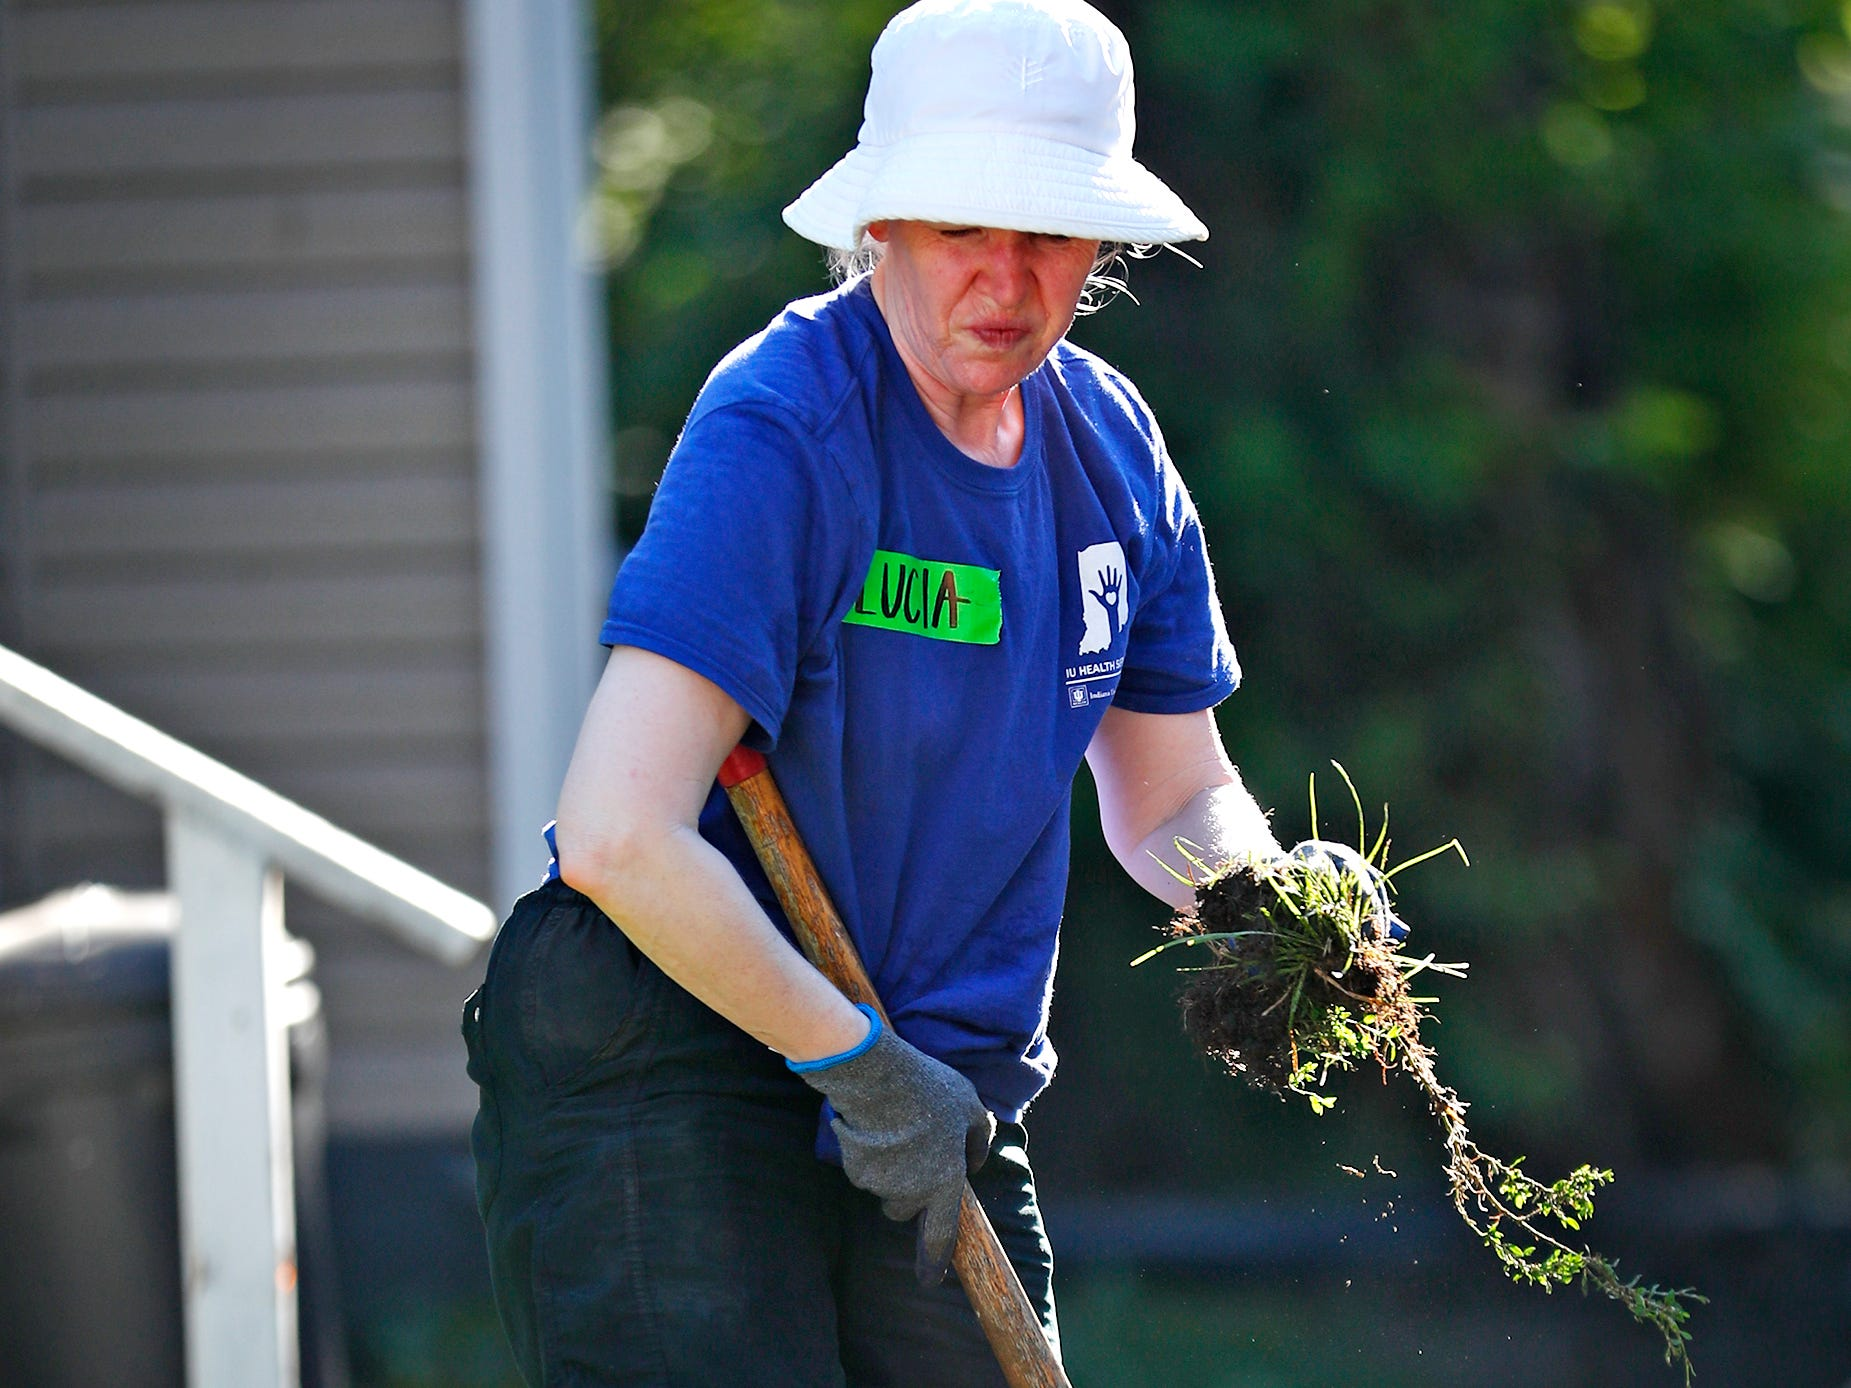 Lucia Wocial works on the front lawn landscaping of a Habitat for Humanity home, during the 10th Annual IU Health Day of Service, Friday, Sept. 13, 2018.  IU Health team members donated time and effort building and finishing a Habitat for Humanity home in the 3700 block of Kenwood Ave. For 22 days, with partner volunteers, over 250 members of the IU Health team have donated more than 1680 hours at the house that will become the new home for the Ndatira family.